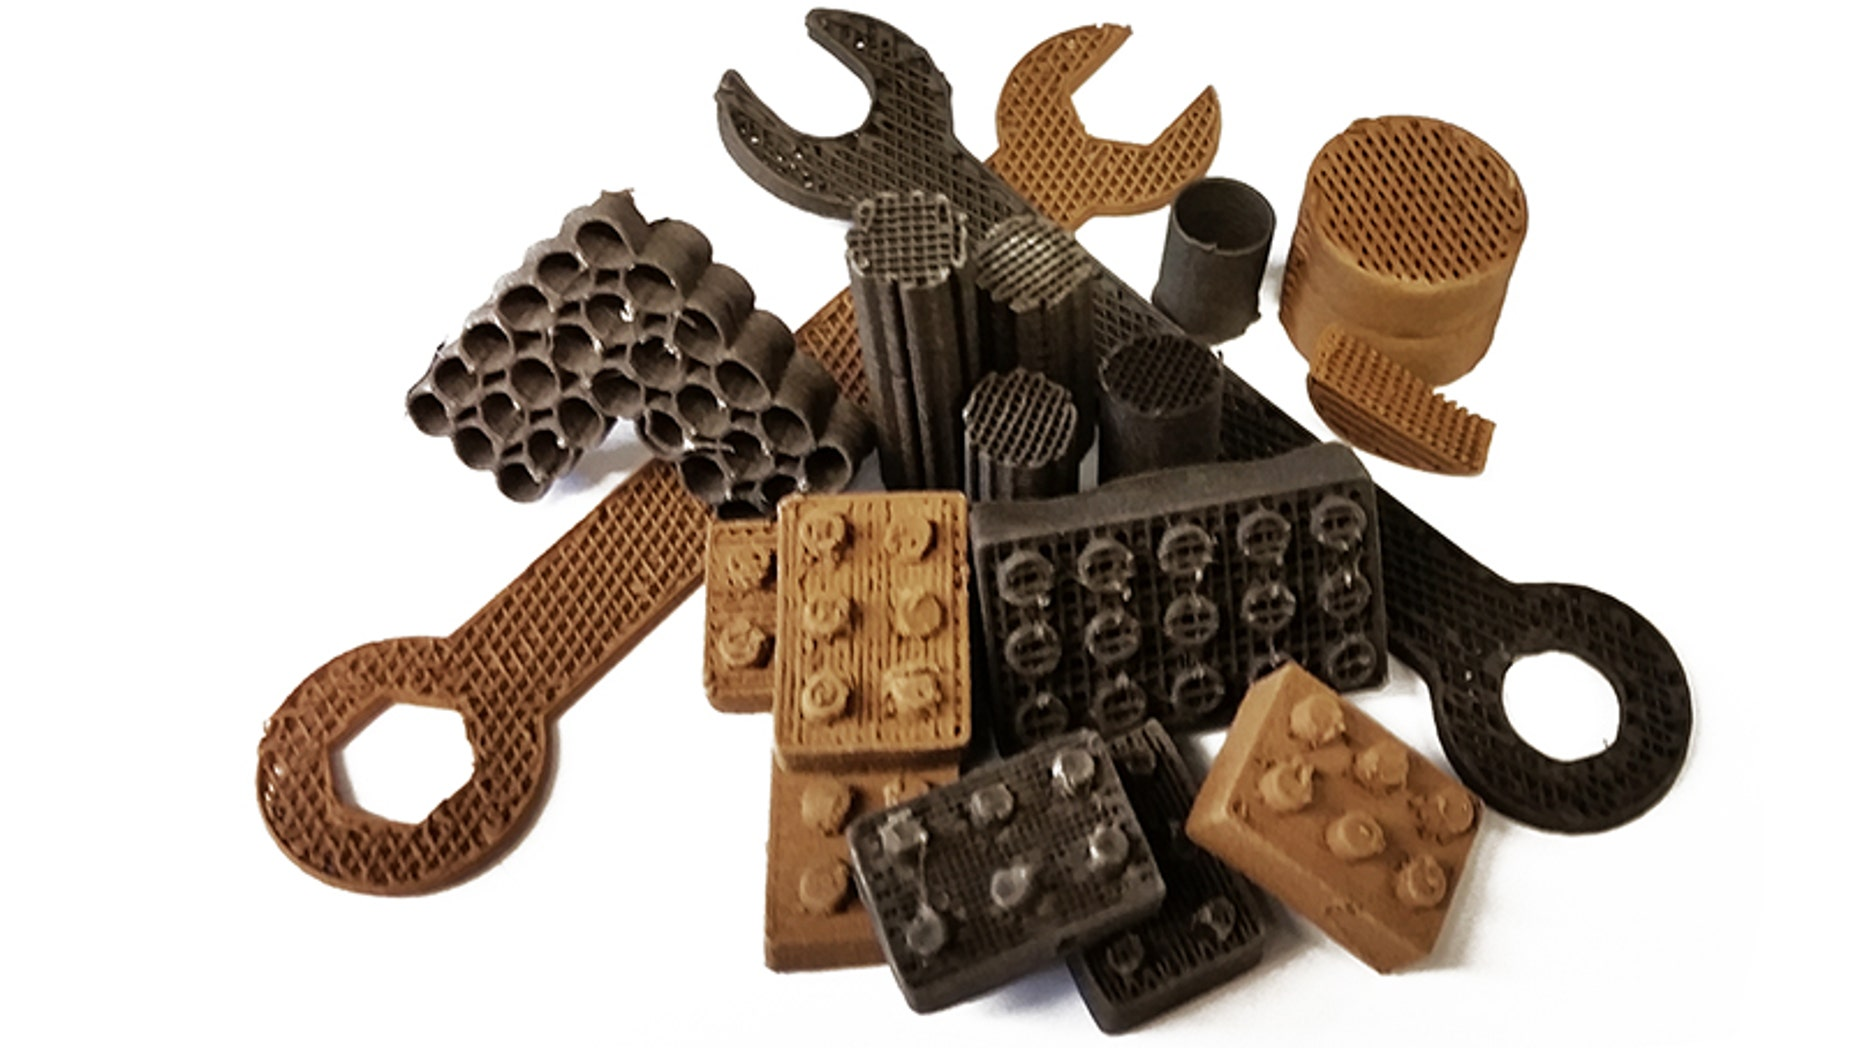 A new method has used simulated Martian and lunar dust to 3D print flexible, tough rubber tools. The method could one day be used by Martian colonists to print their own tools using local materials on the Red Planet.